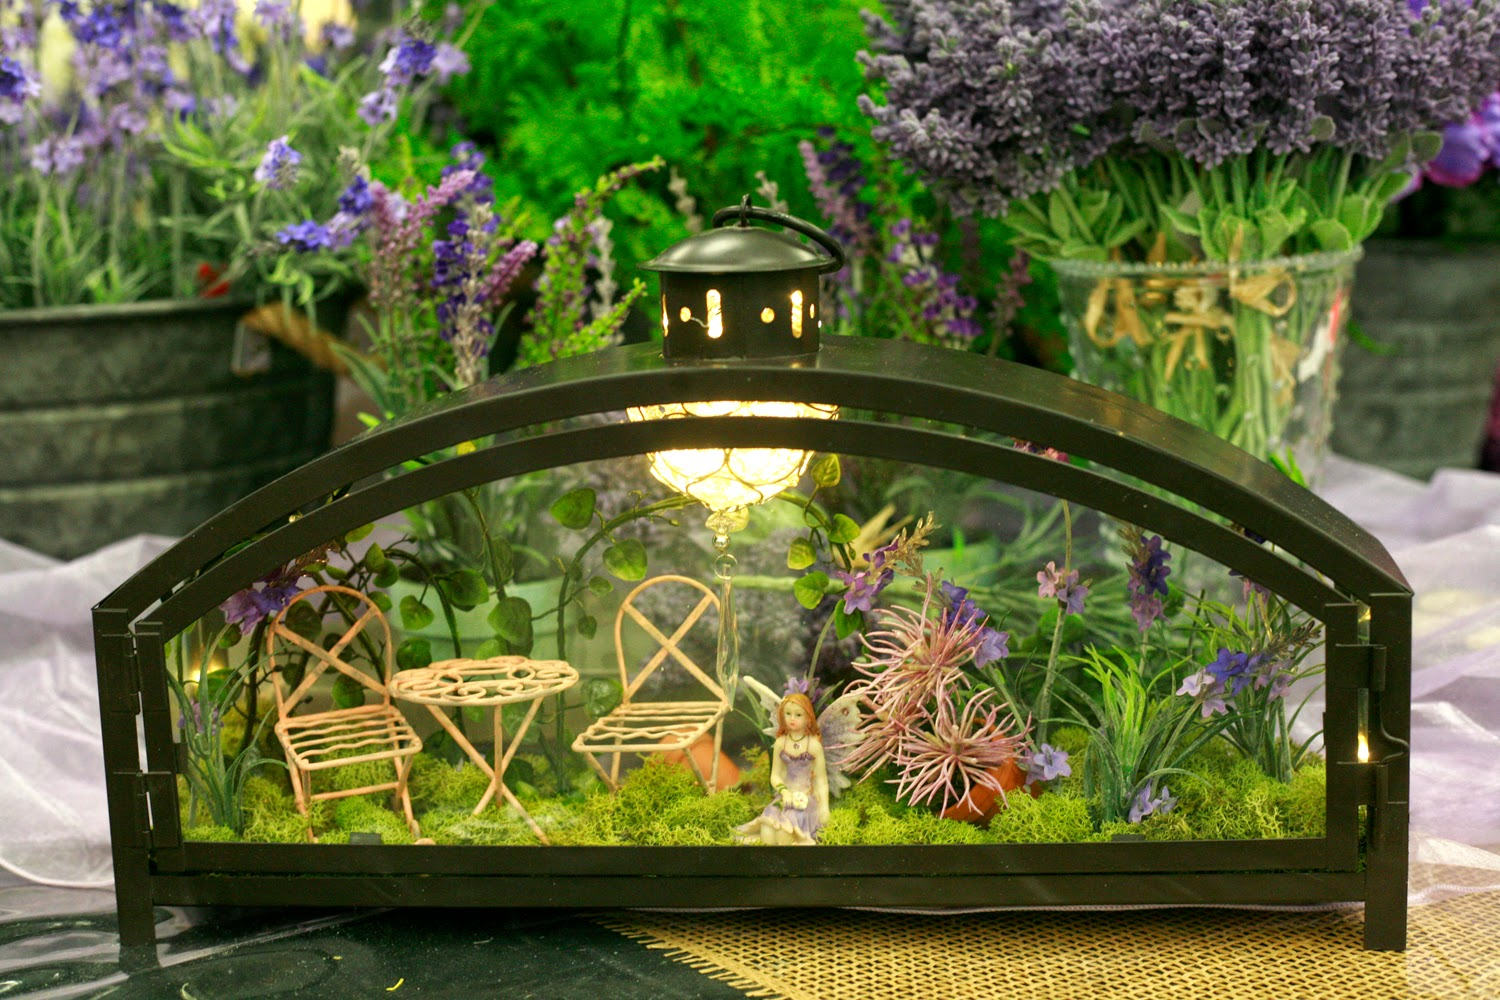 Image Gallery of Fairy Garden Container Ideas